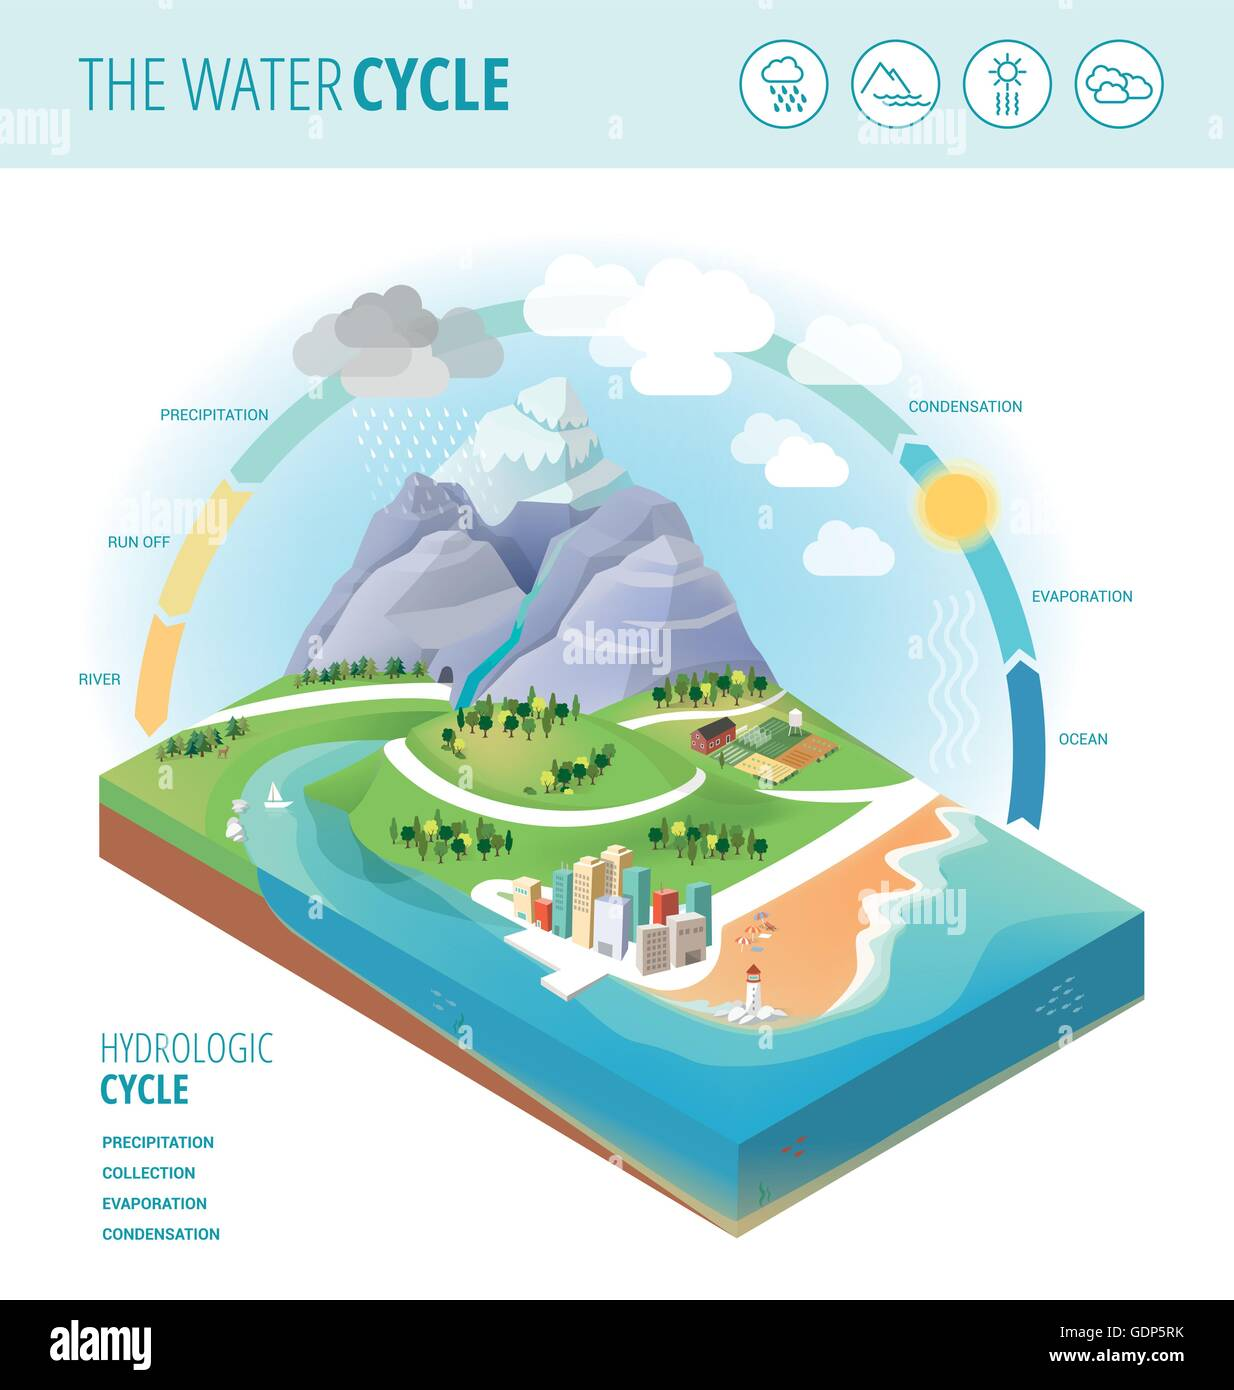 water cycle diagram stock